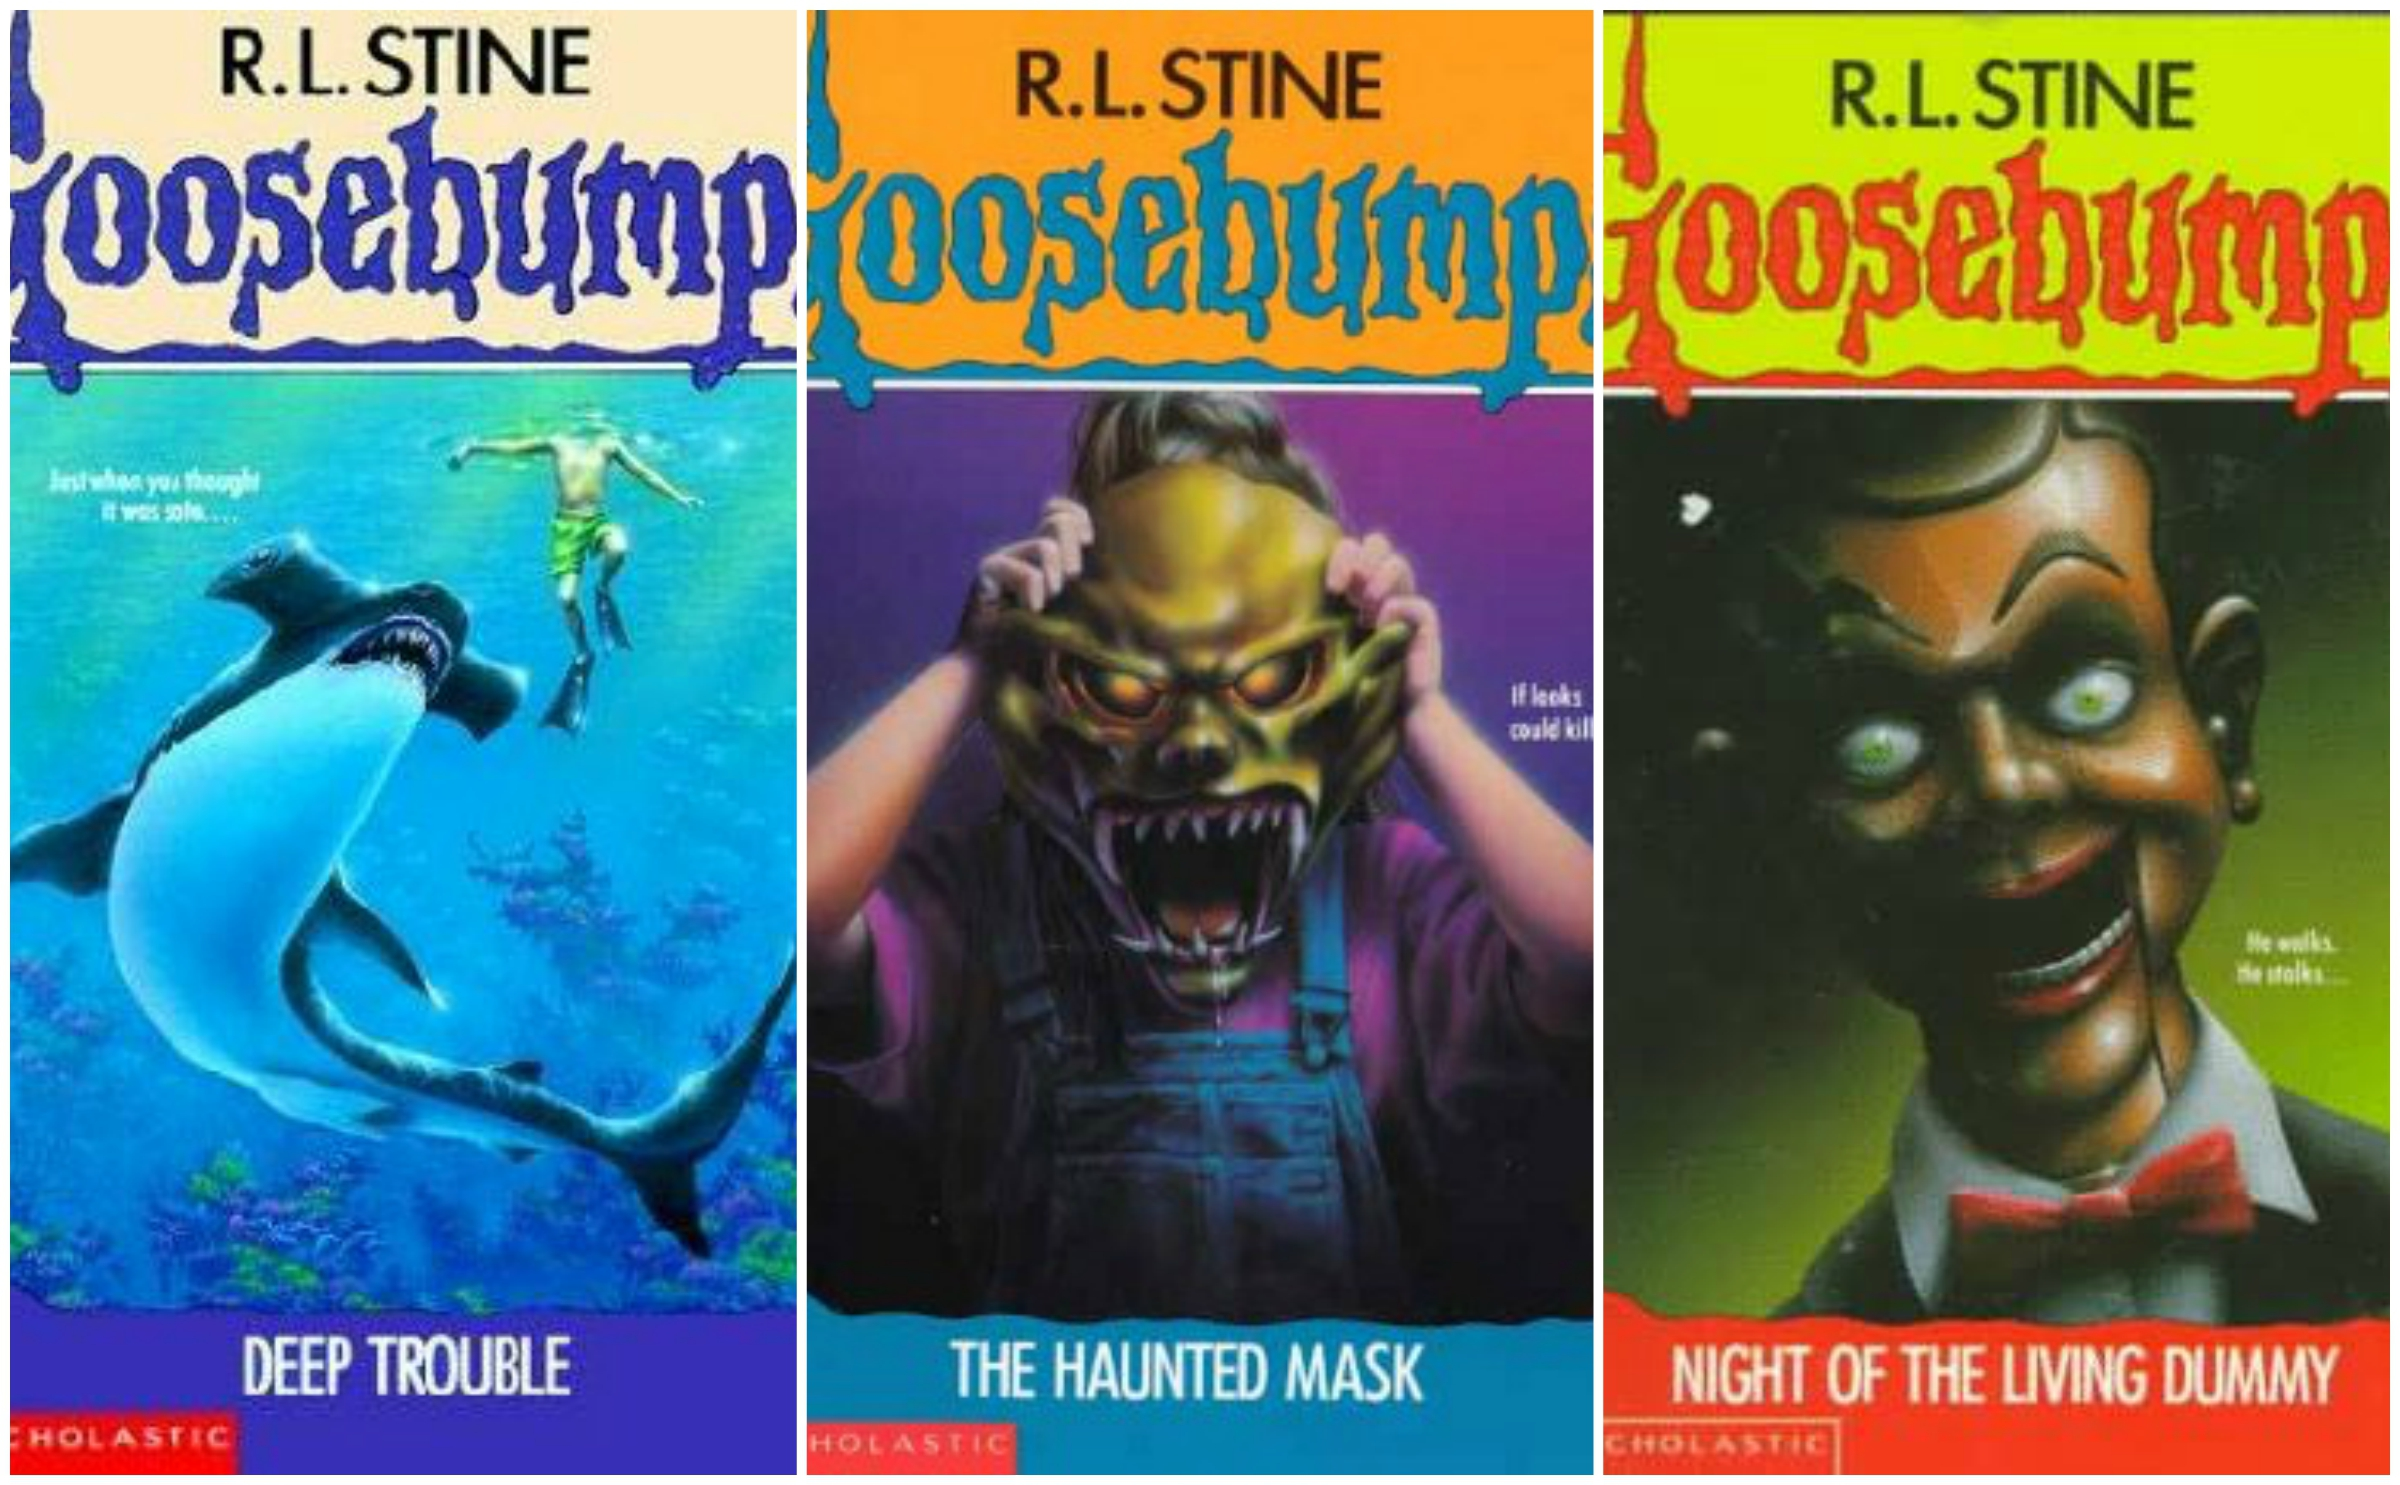 An image of Deep Trouble, The Haunted Mask and Night of the Living Dummy Goosebumps book covers.